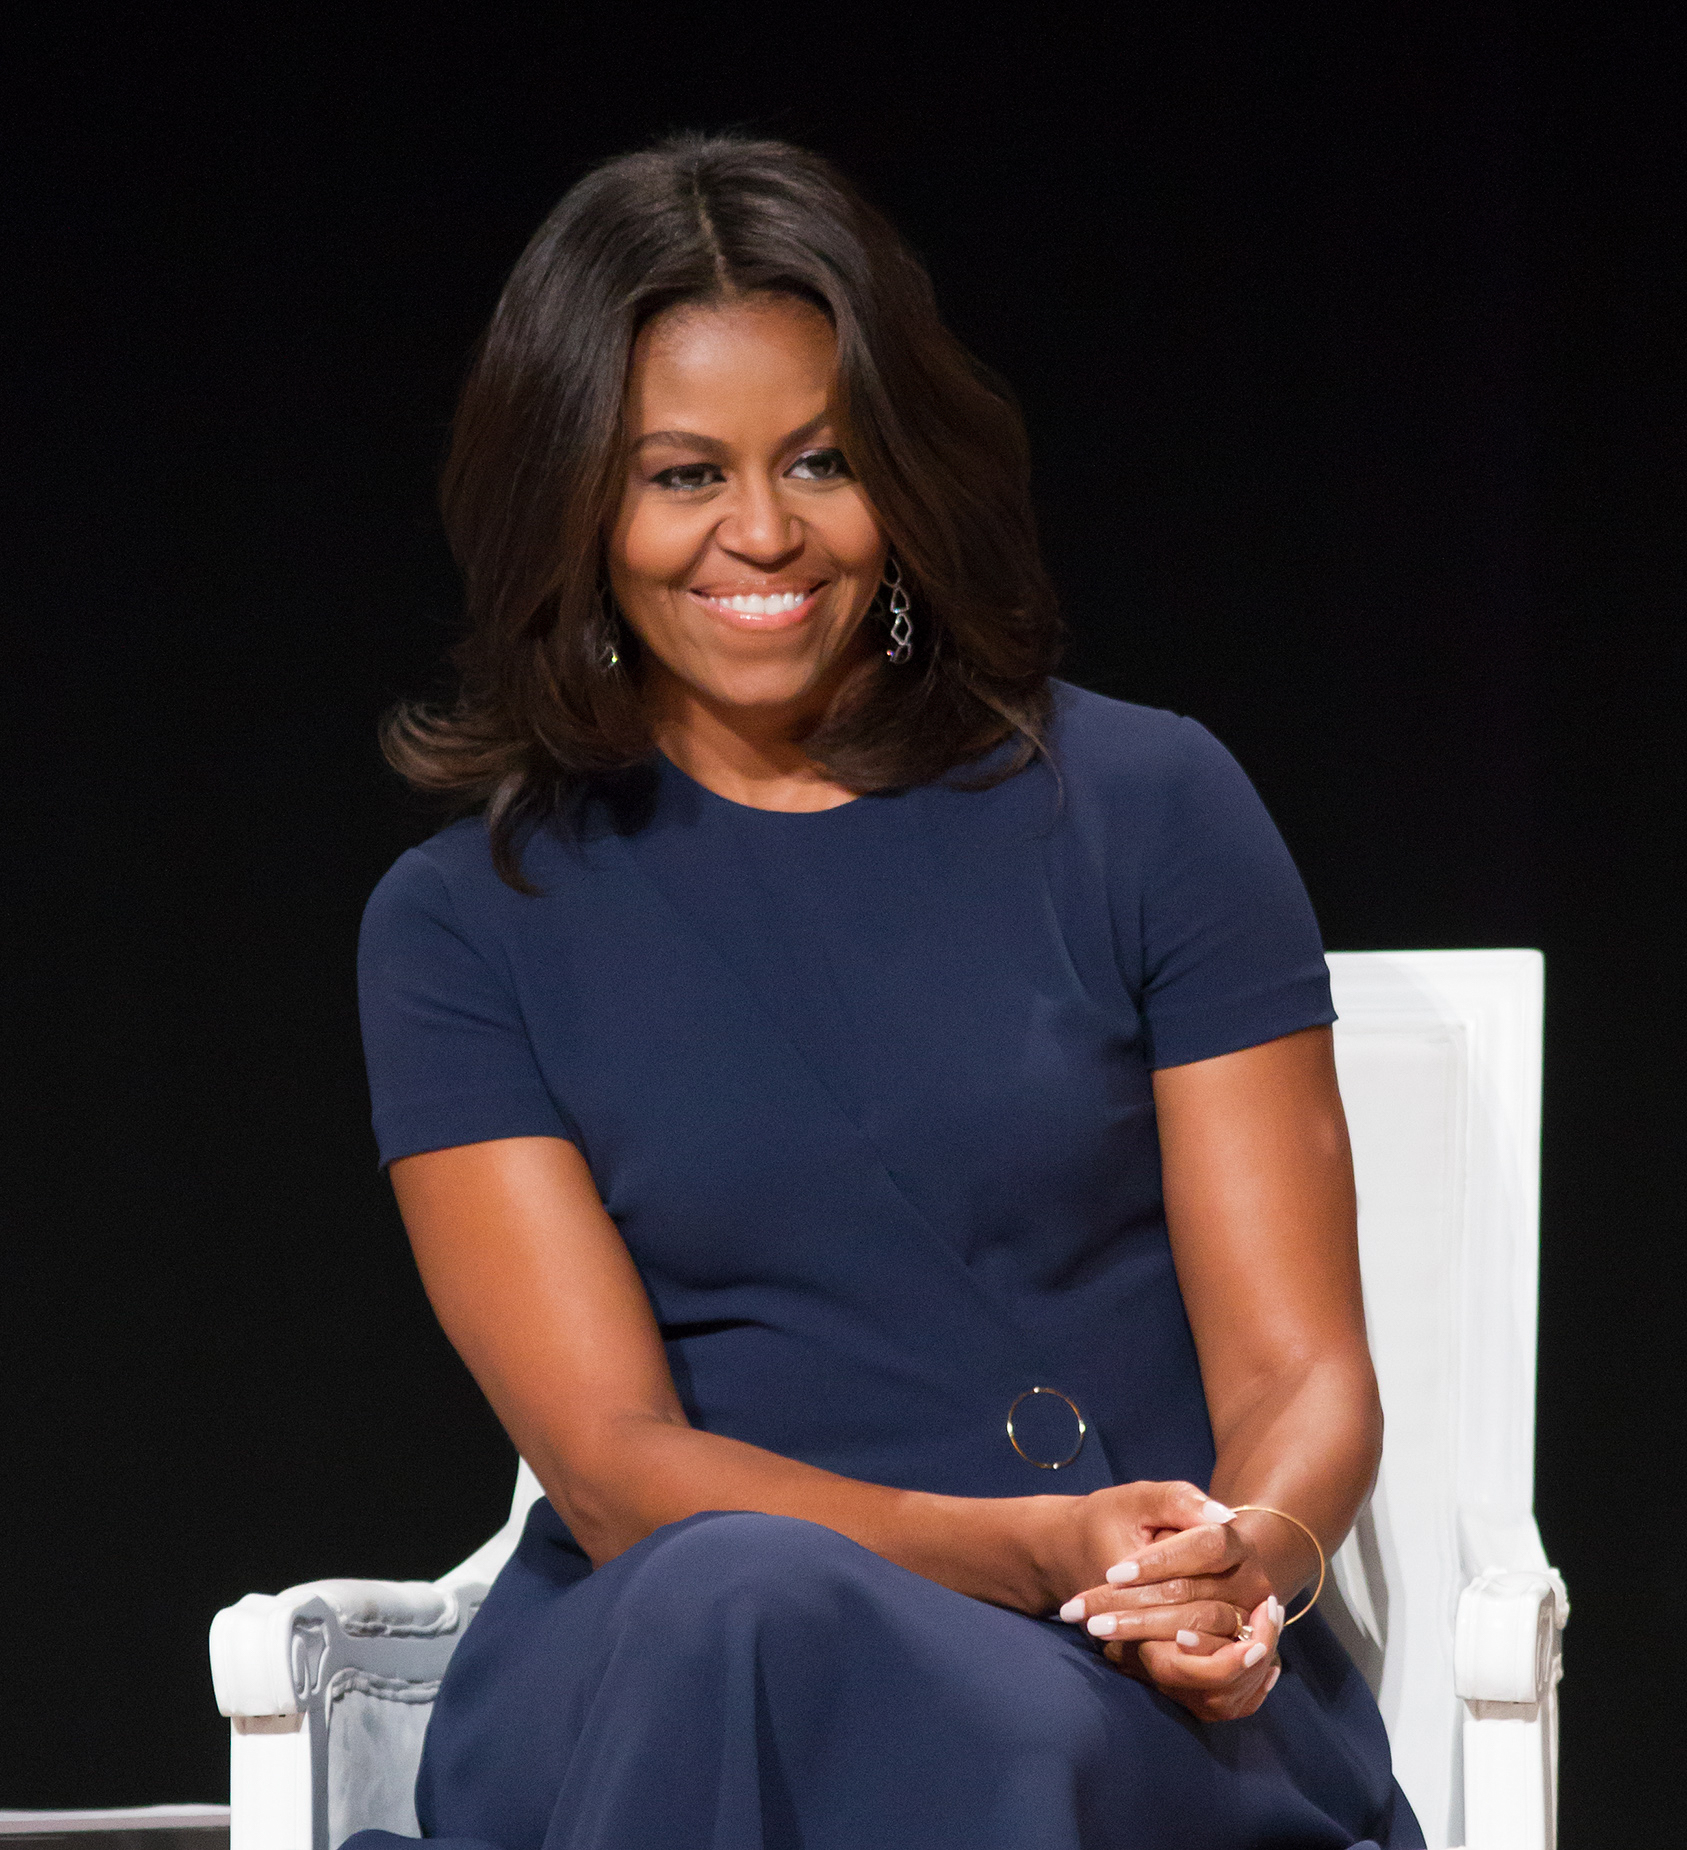 """09/29/2015 - Michelle Obama - Glamour Hosts """"The Power of an Educated Girl"""" with First Lady Michelle Obama - Panel - The Apollo Theater - New York City, NY, USA - Keywords: """"Let Girls Learn"""", Vertical, Photography, NYC, Arts Culture and Entertainment, Celebrity, Celebrities, Panel, People, Person Orientation: Portrait Face Count: 1 - False - Photo Credit: Janet Mayer / PRPhotos.com - Contact (1-866-551-7827) - Portrait Face Count: 1"""